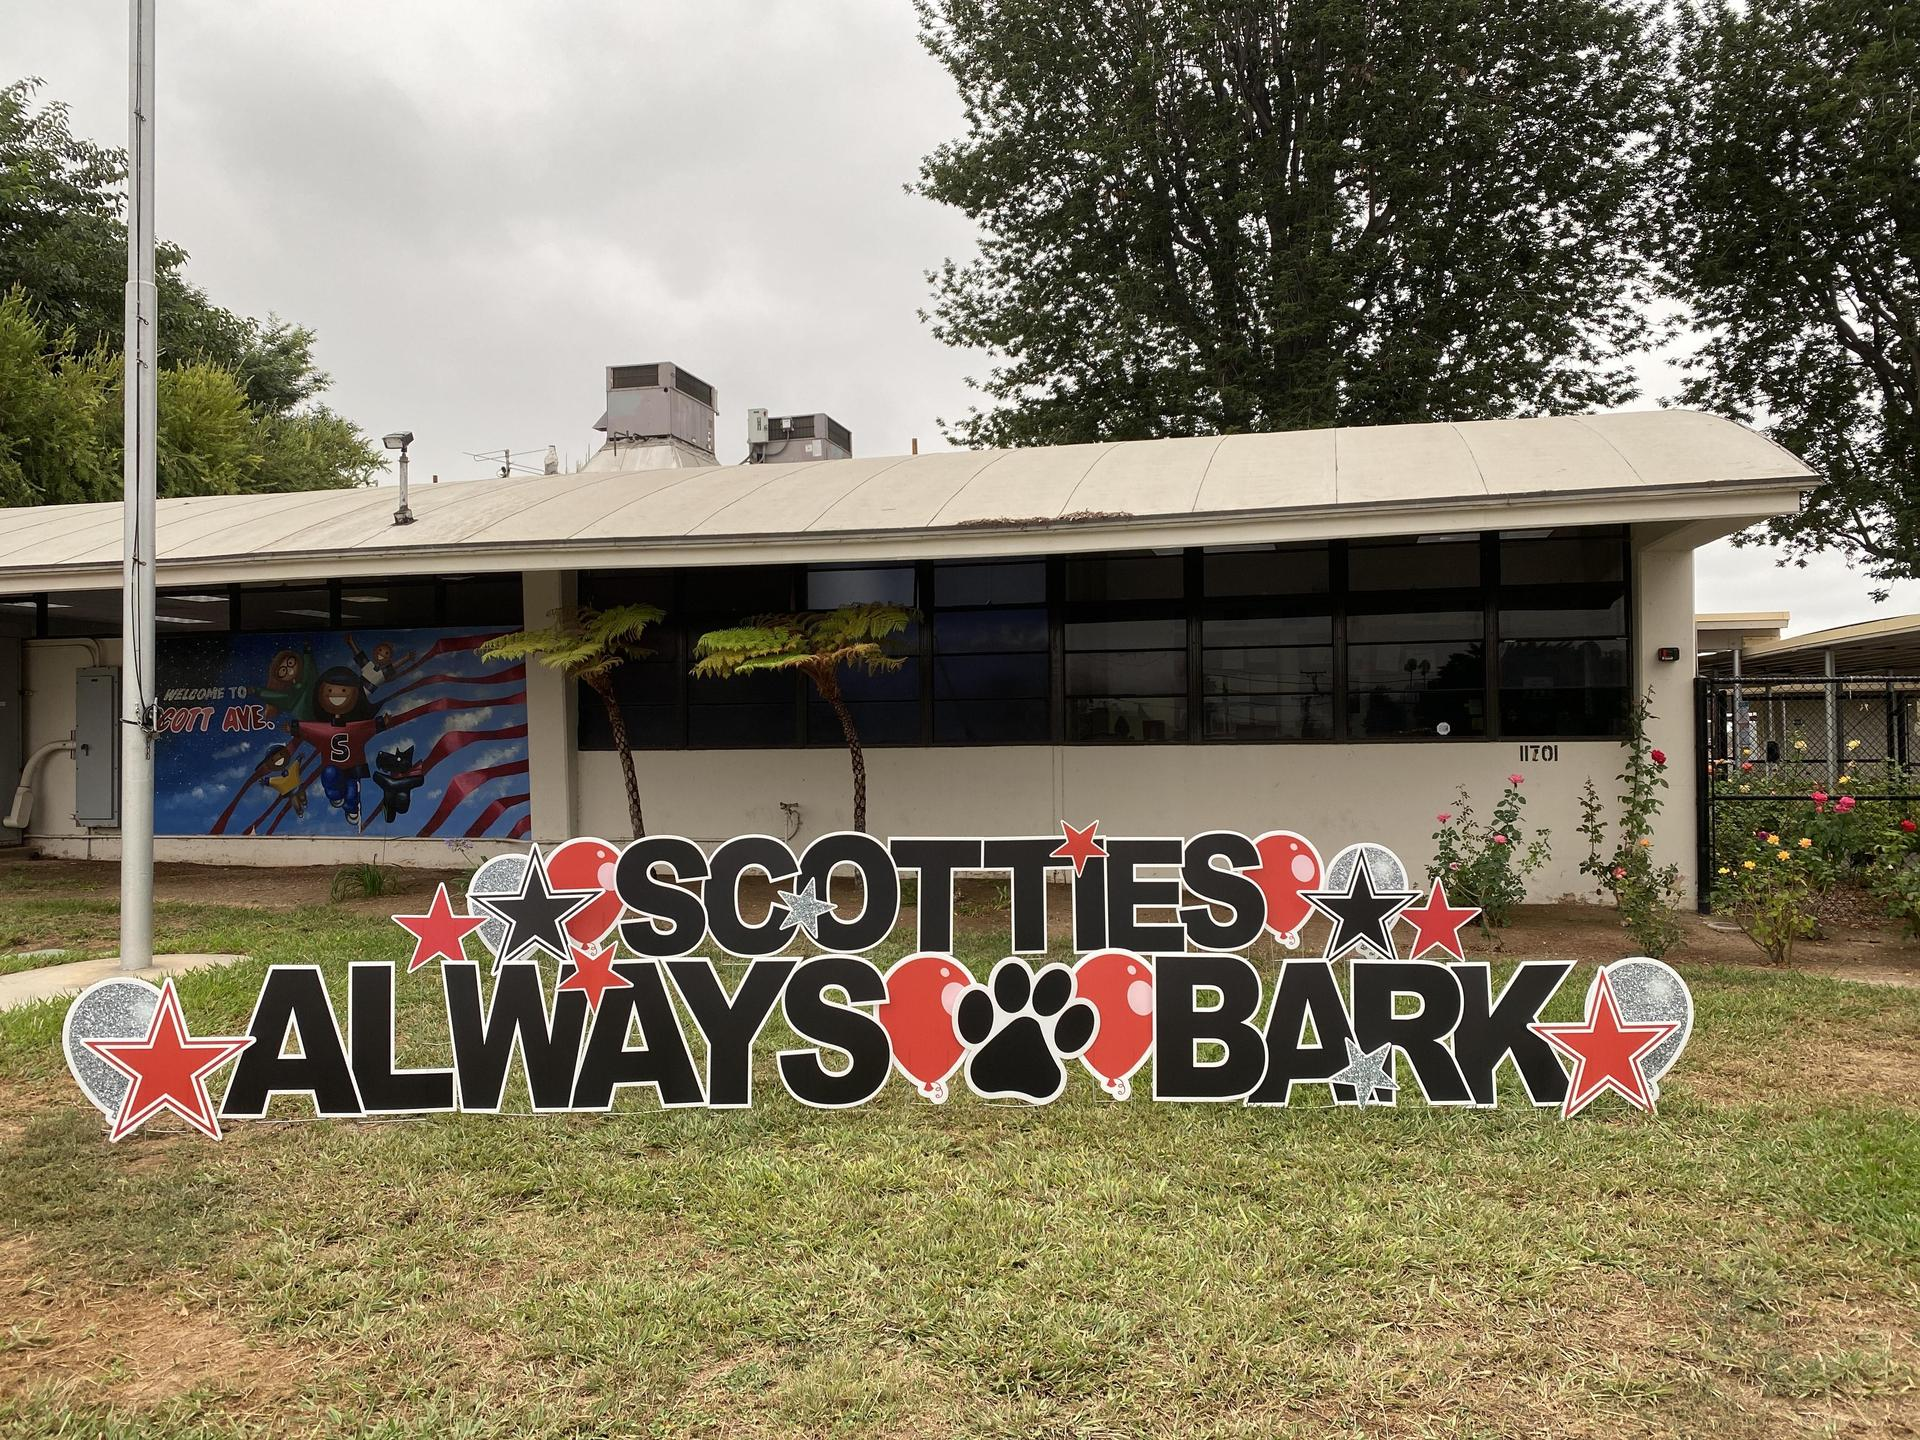 Image of front of Scott Avenue with lawn sign 'Scotties Always BARK'.